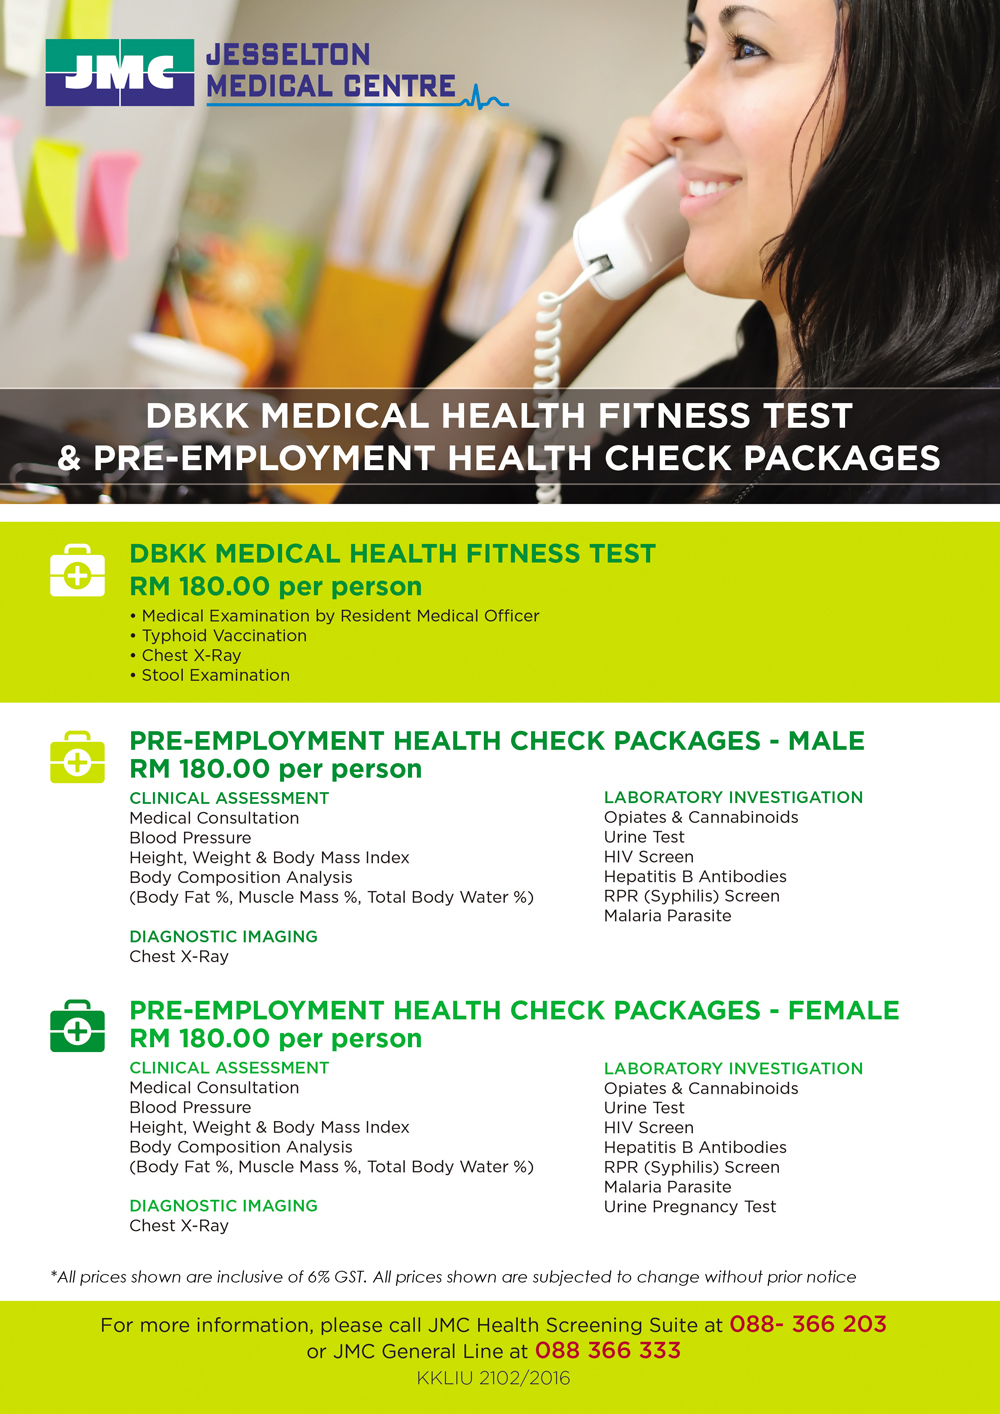 jesselton medical centre medical packages dbkk health fitness test jmc pre employment packages